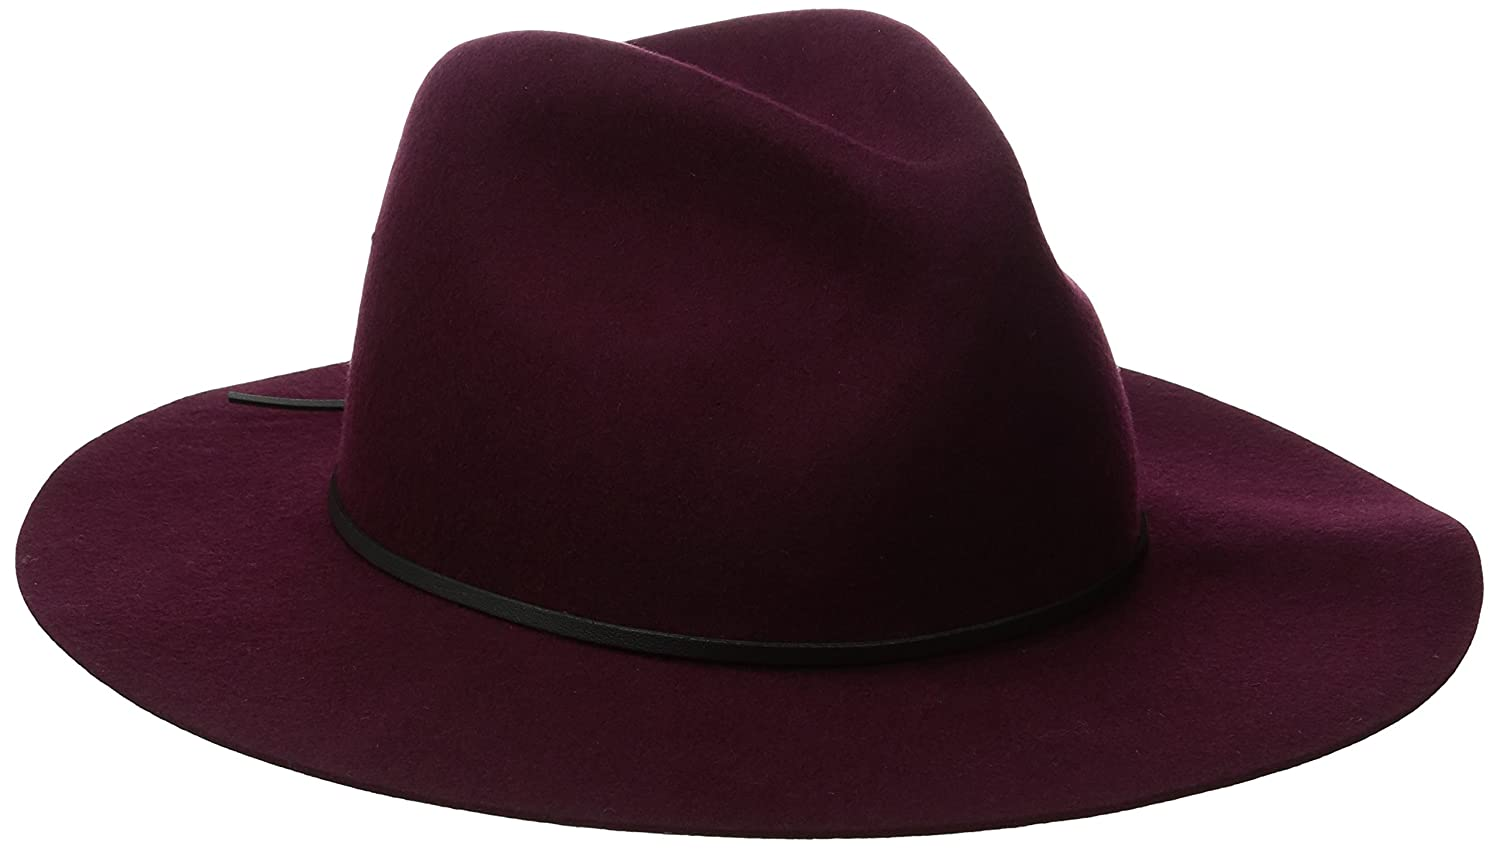 The Dex Wide Brimmed Hat Wool Felt Fedora Coal Young Men's 2319